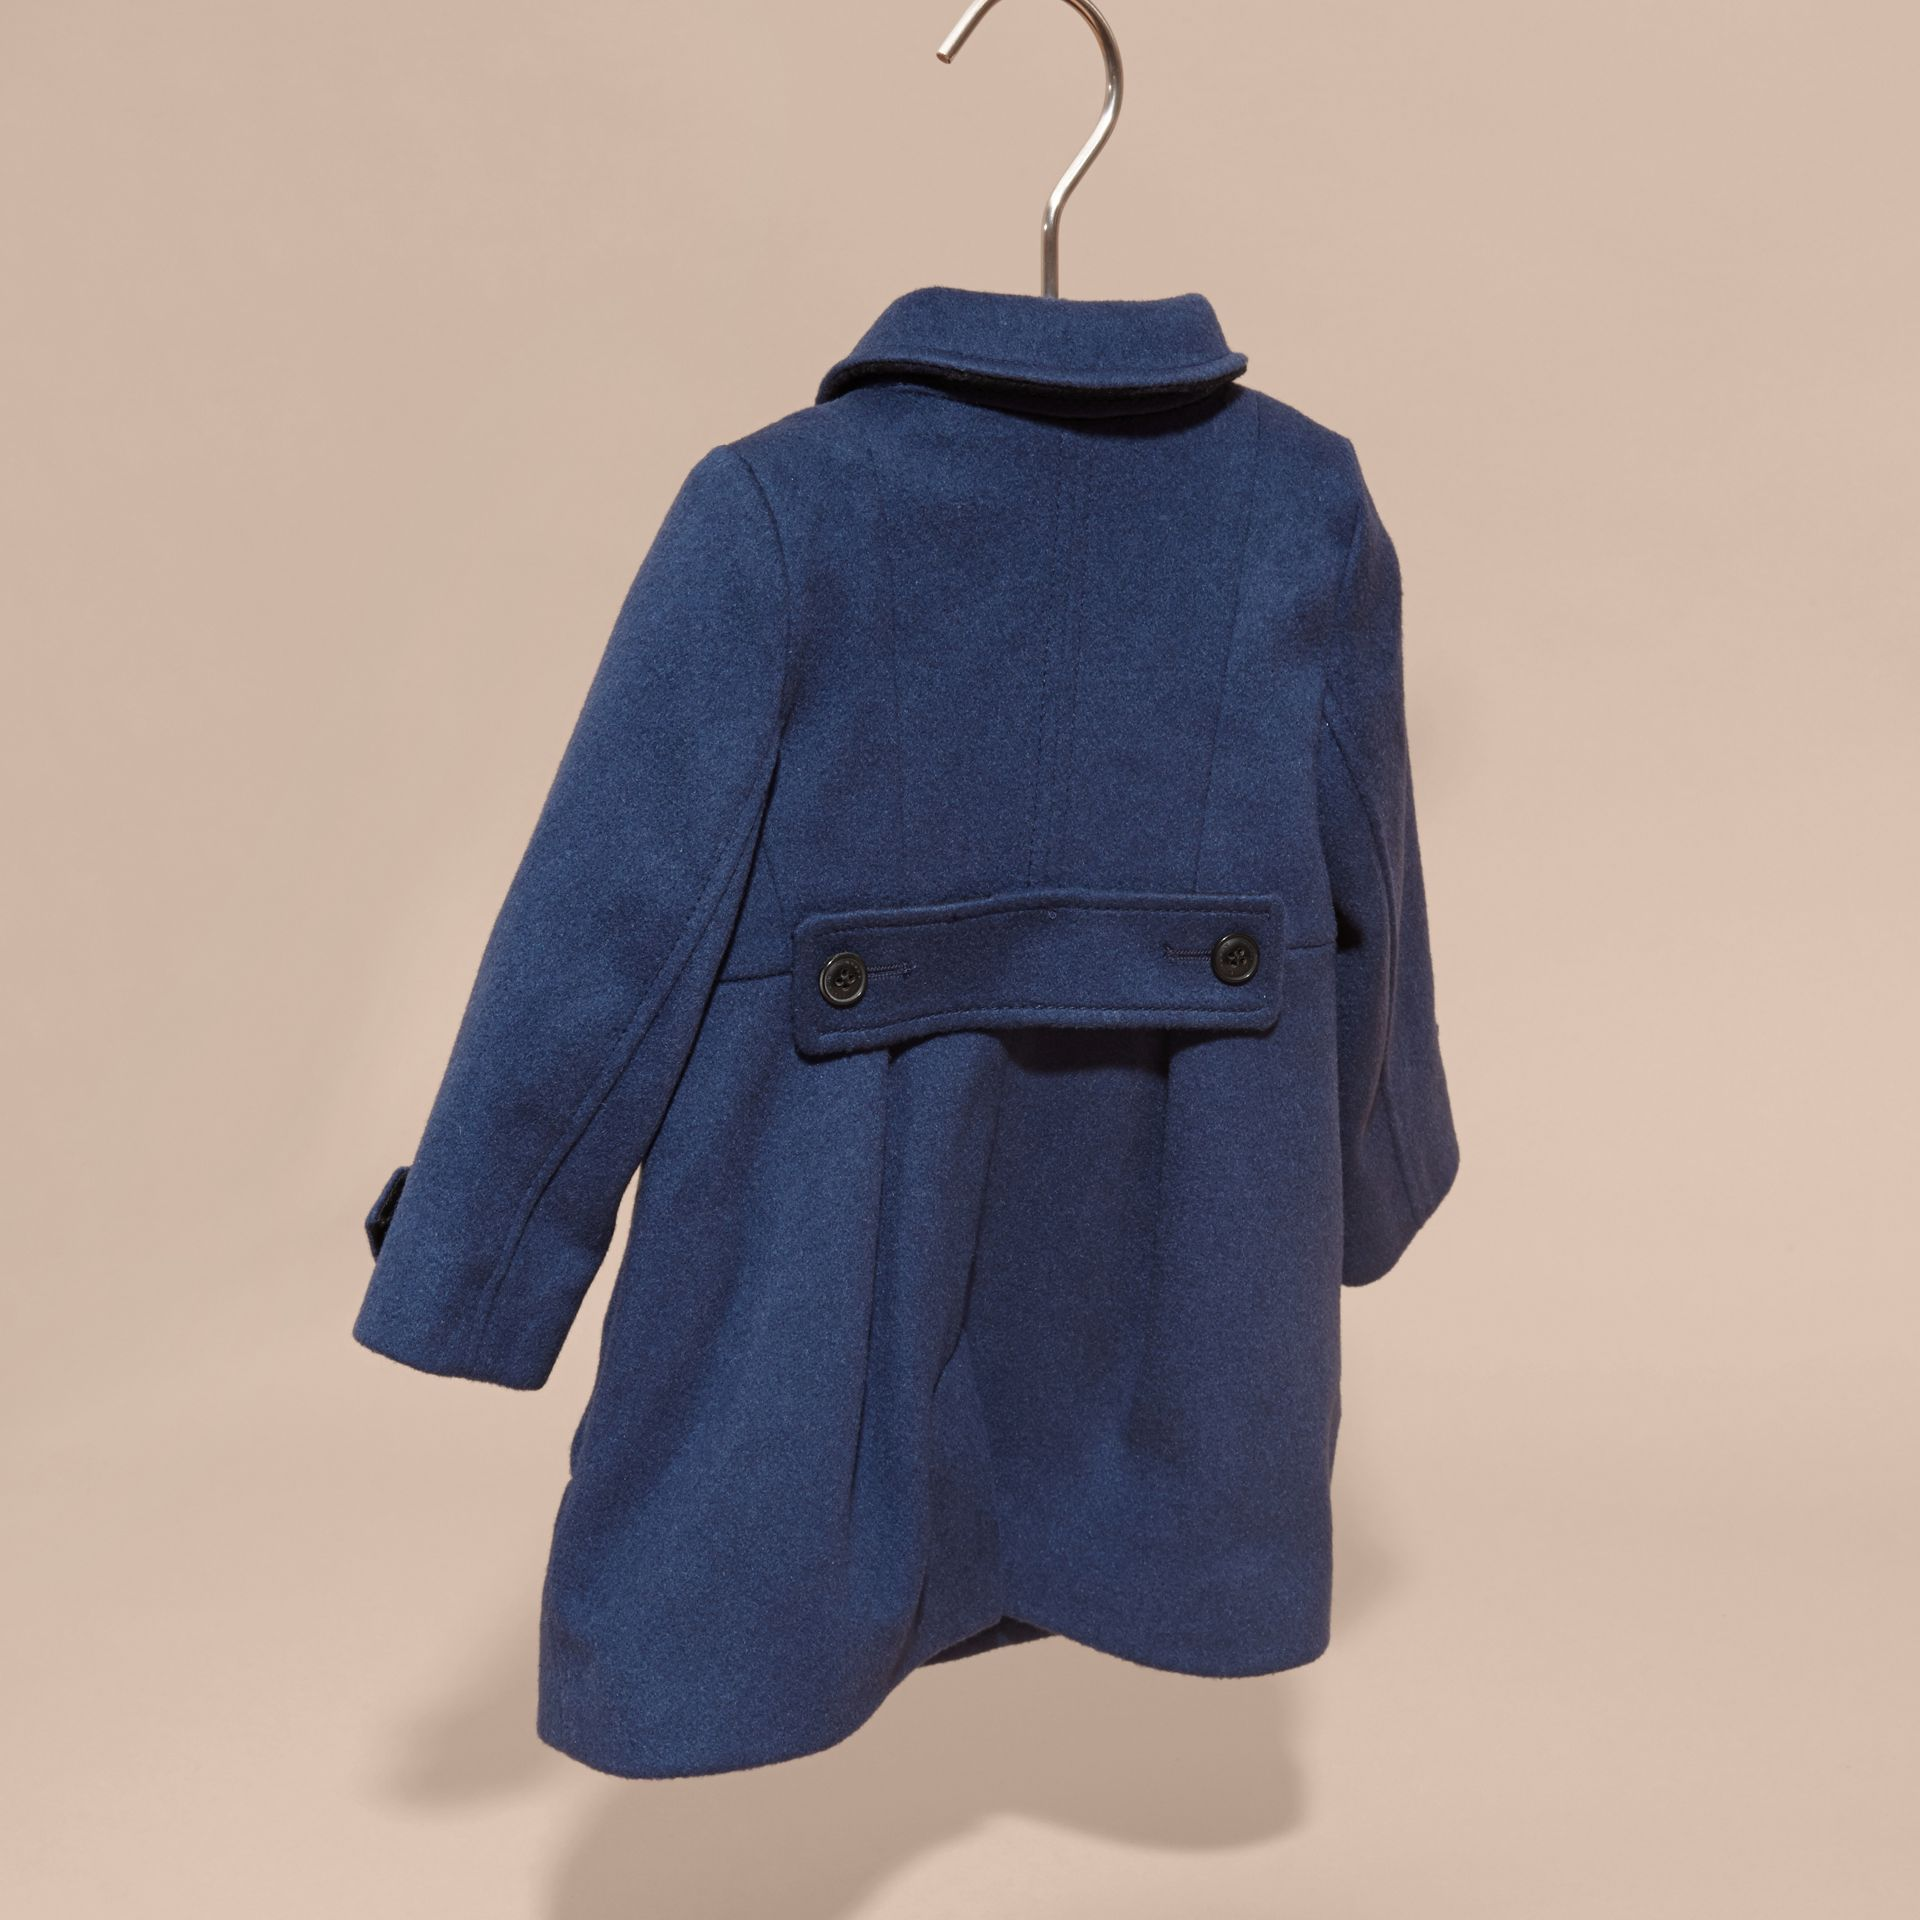 Bright navy Tailored Cashmere Coat Bright Navy - gallery image 4